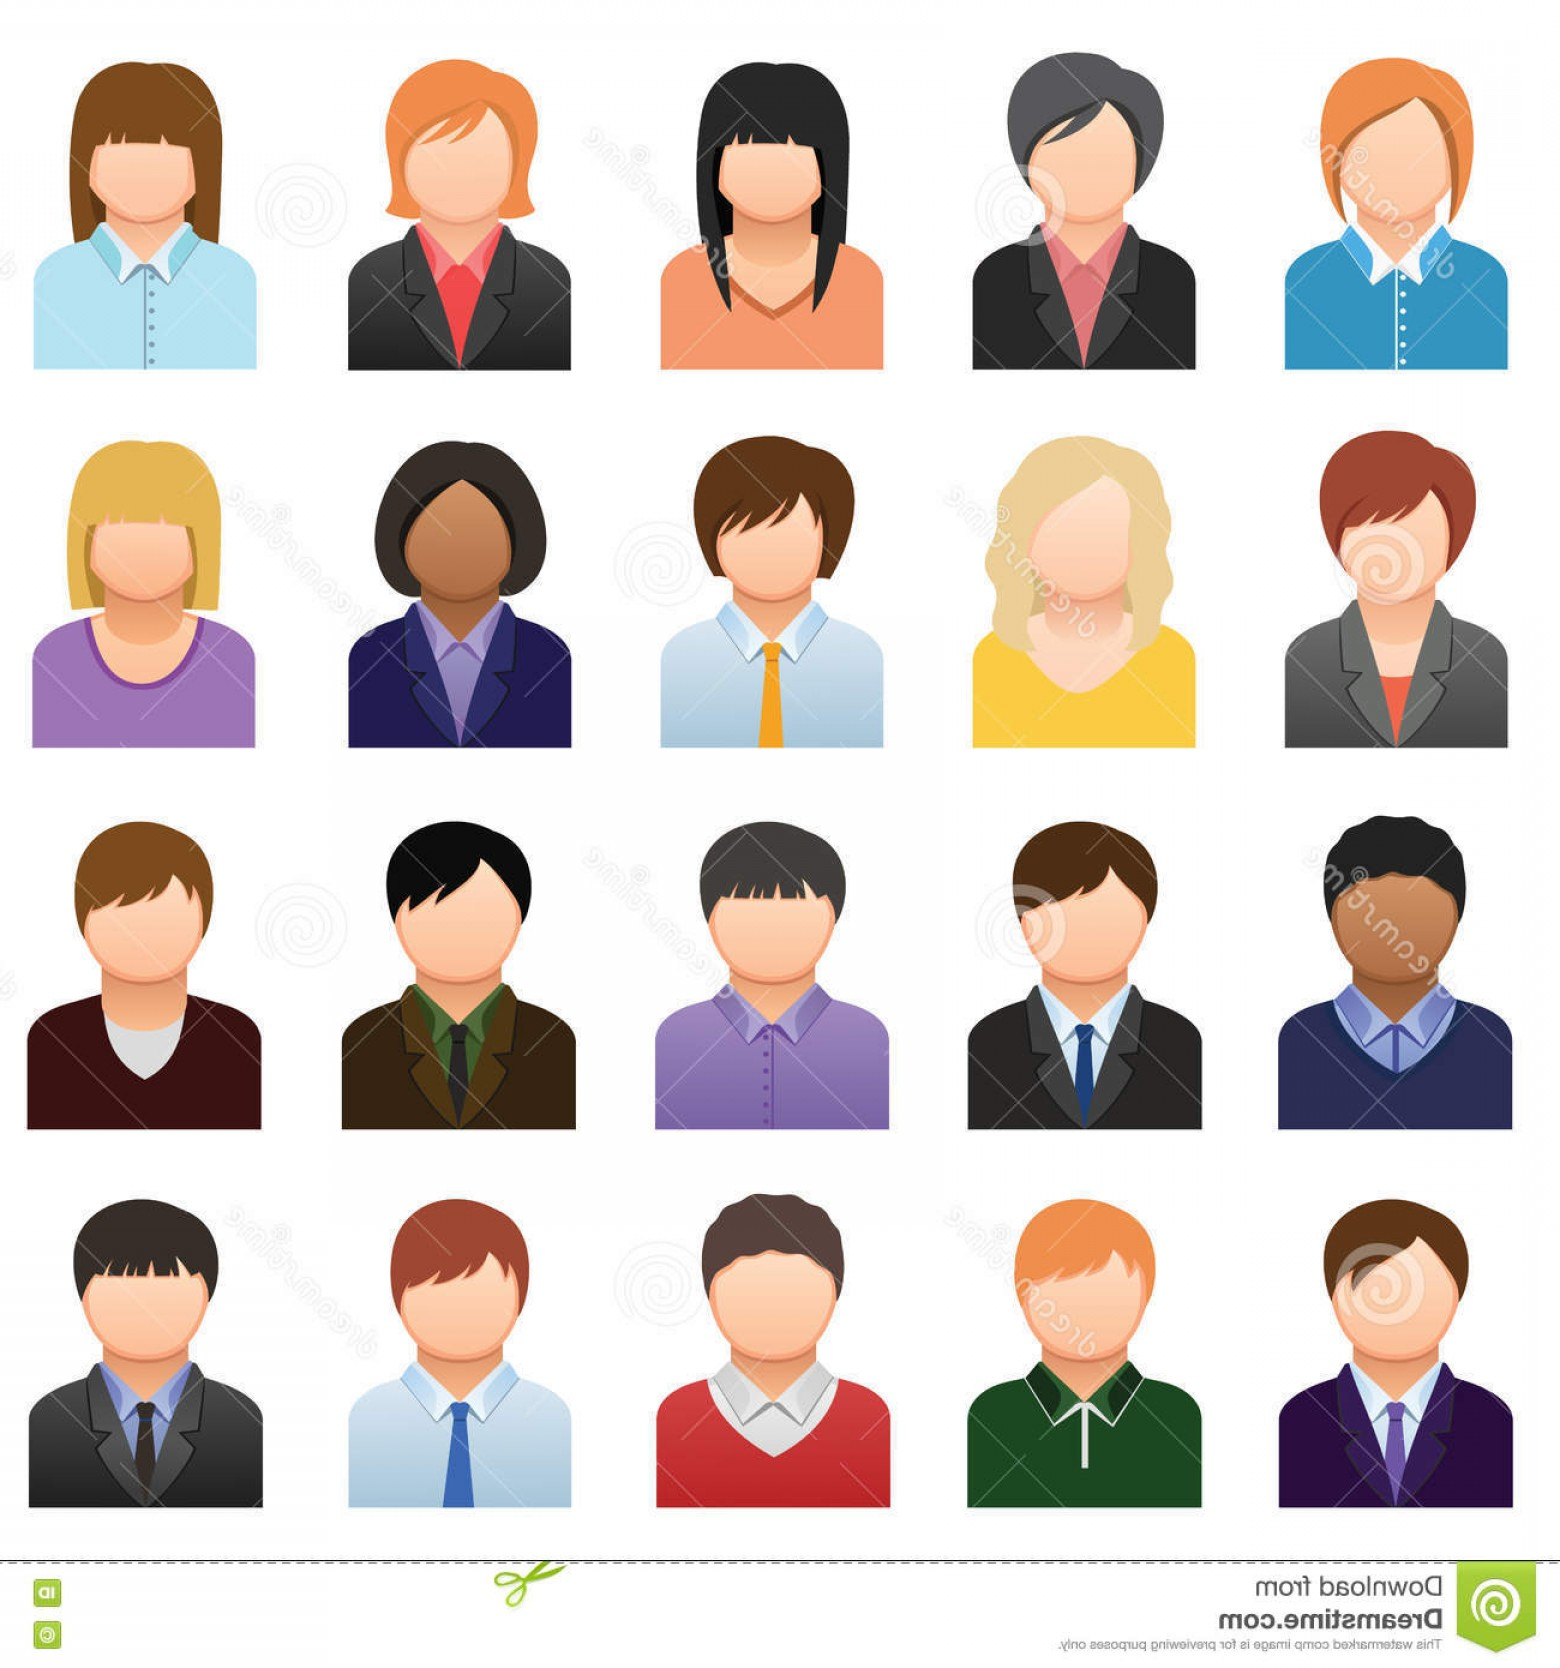 Free Vector Business People Icon: Stock Illustration Business People Icons Color Vector Image